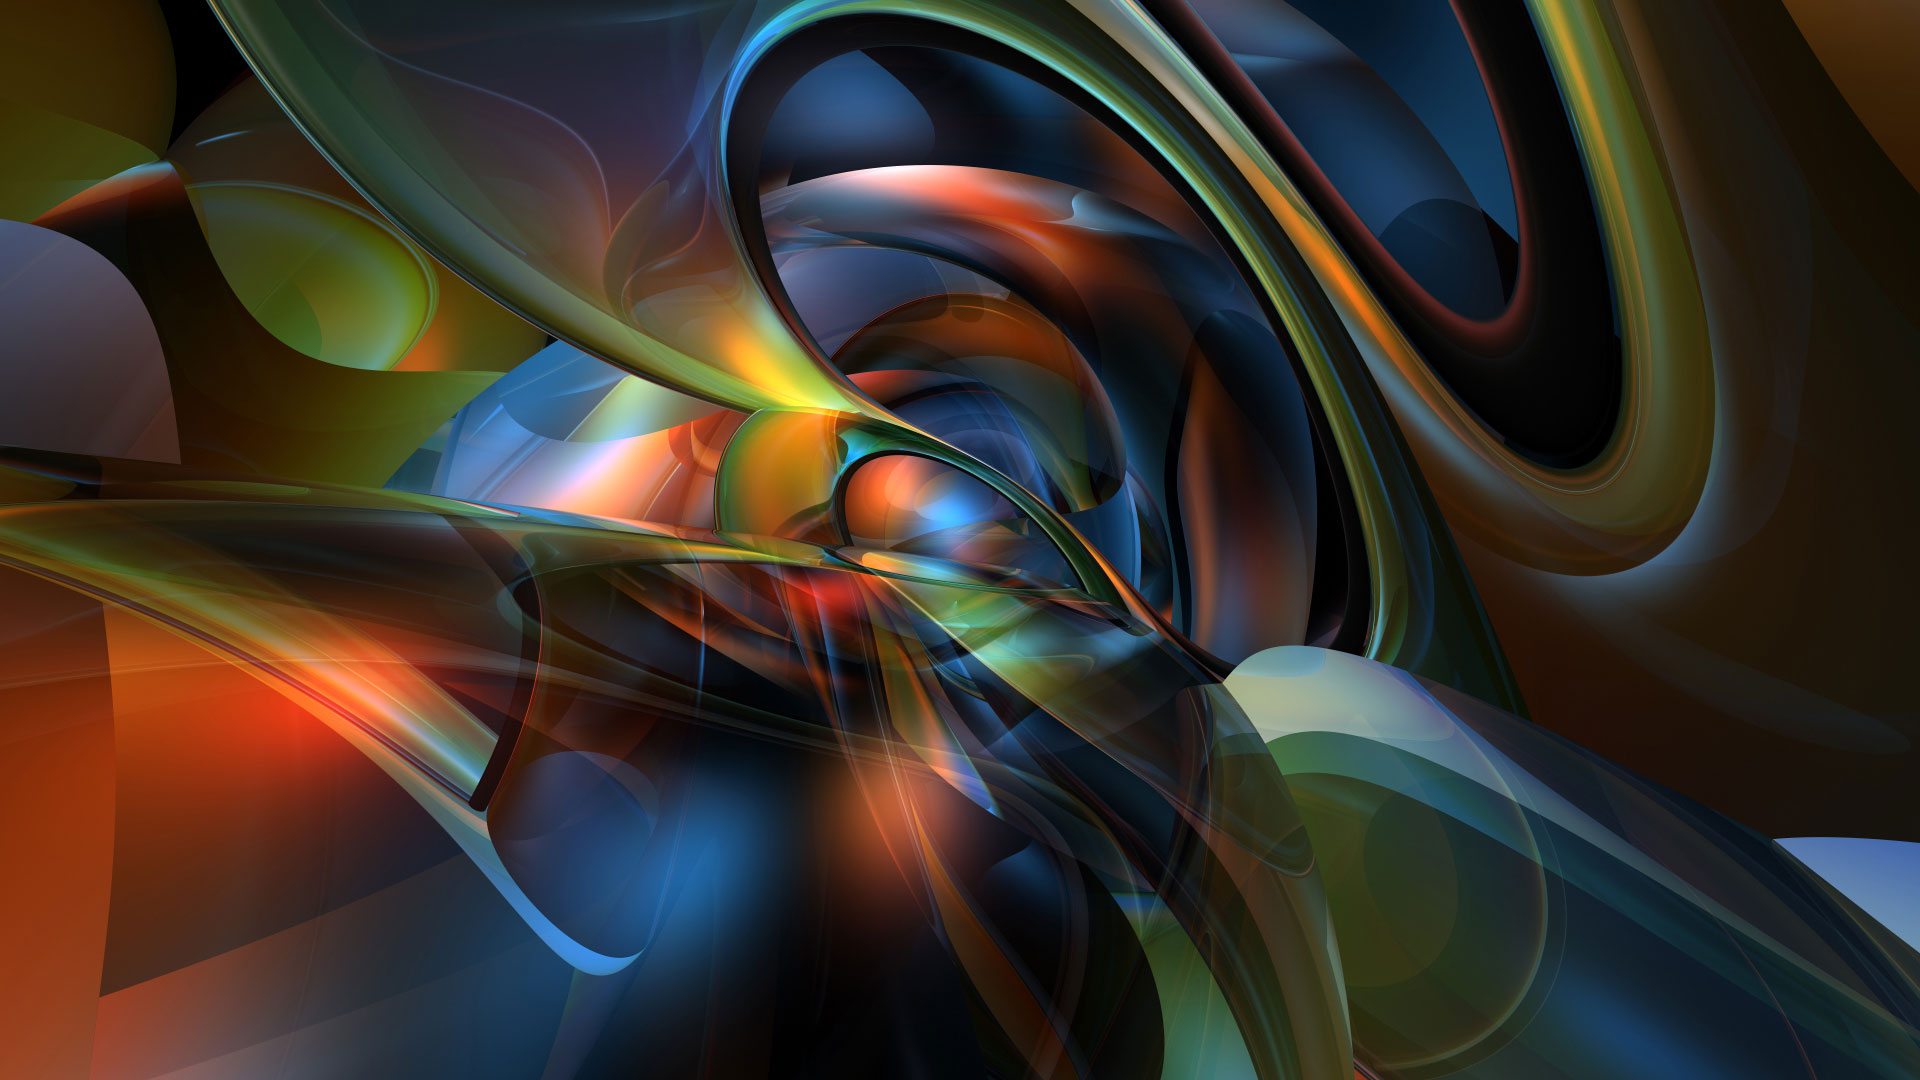 Abstract Designs Wallpapers HD Wallpapers 1920x1080